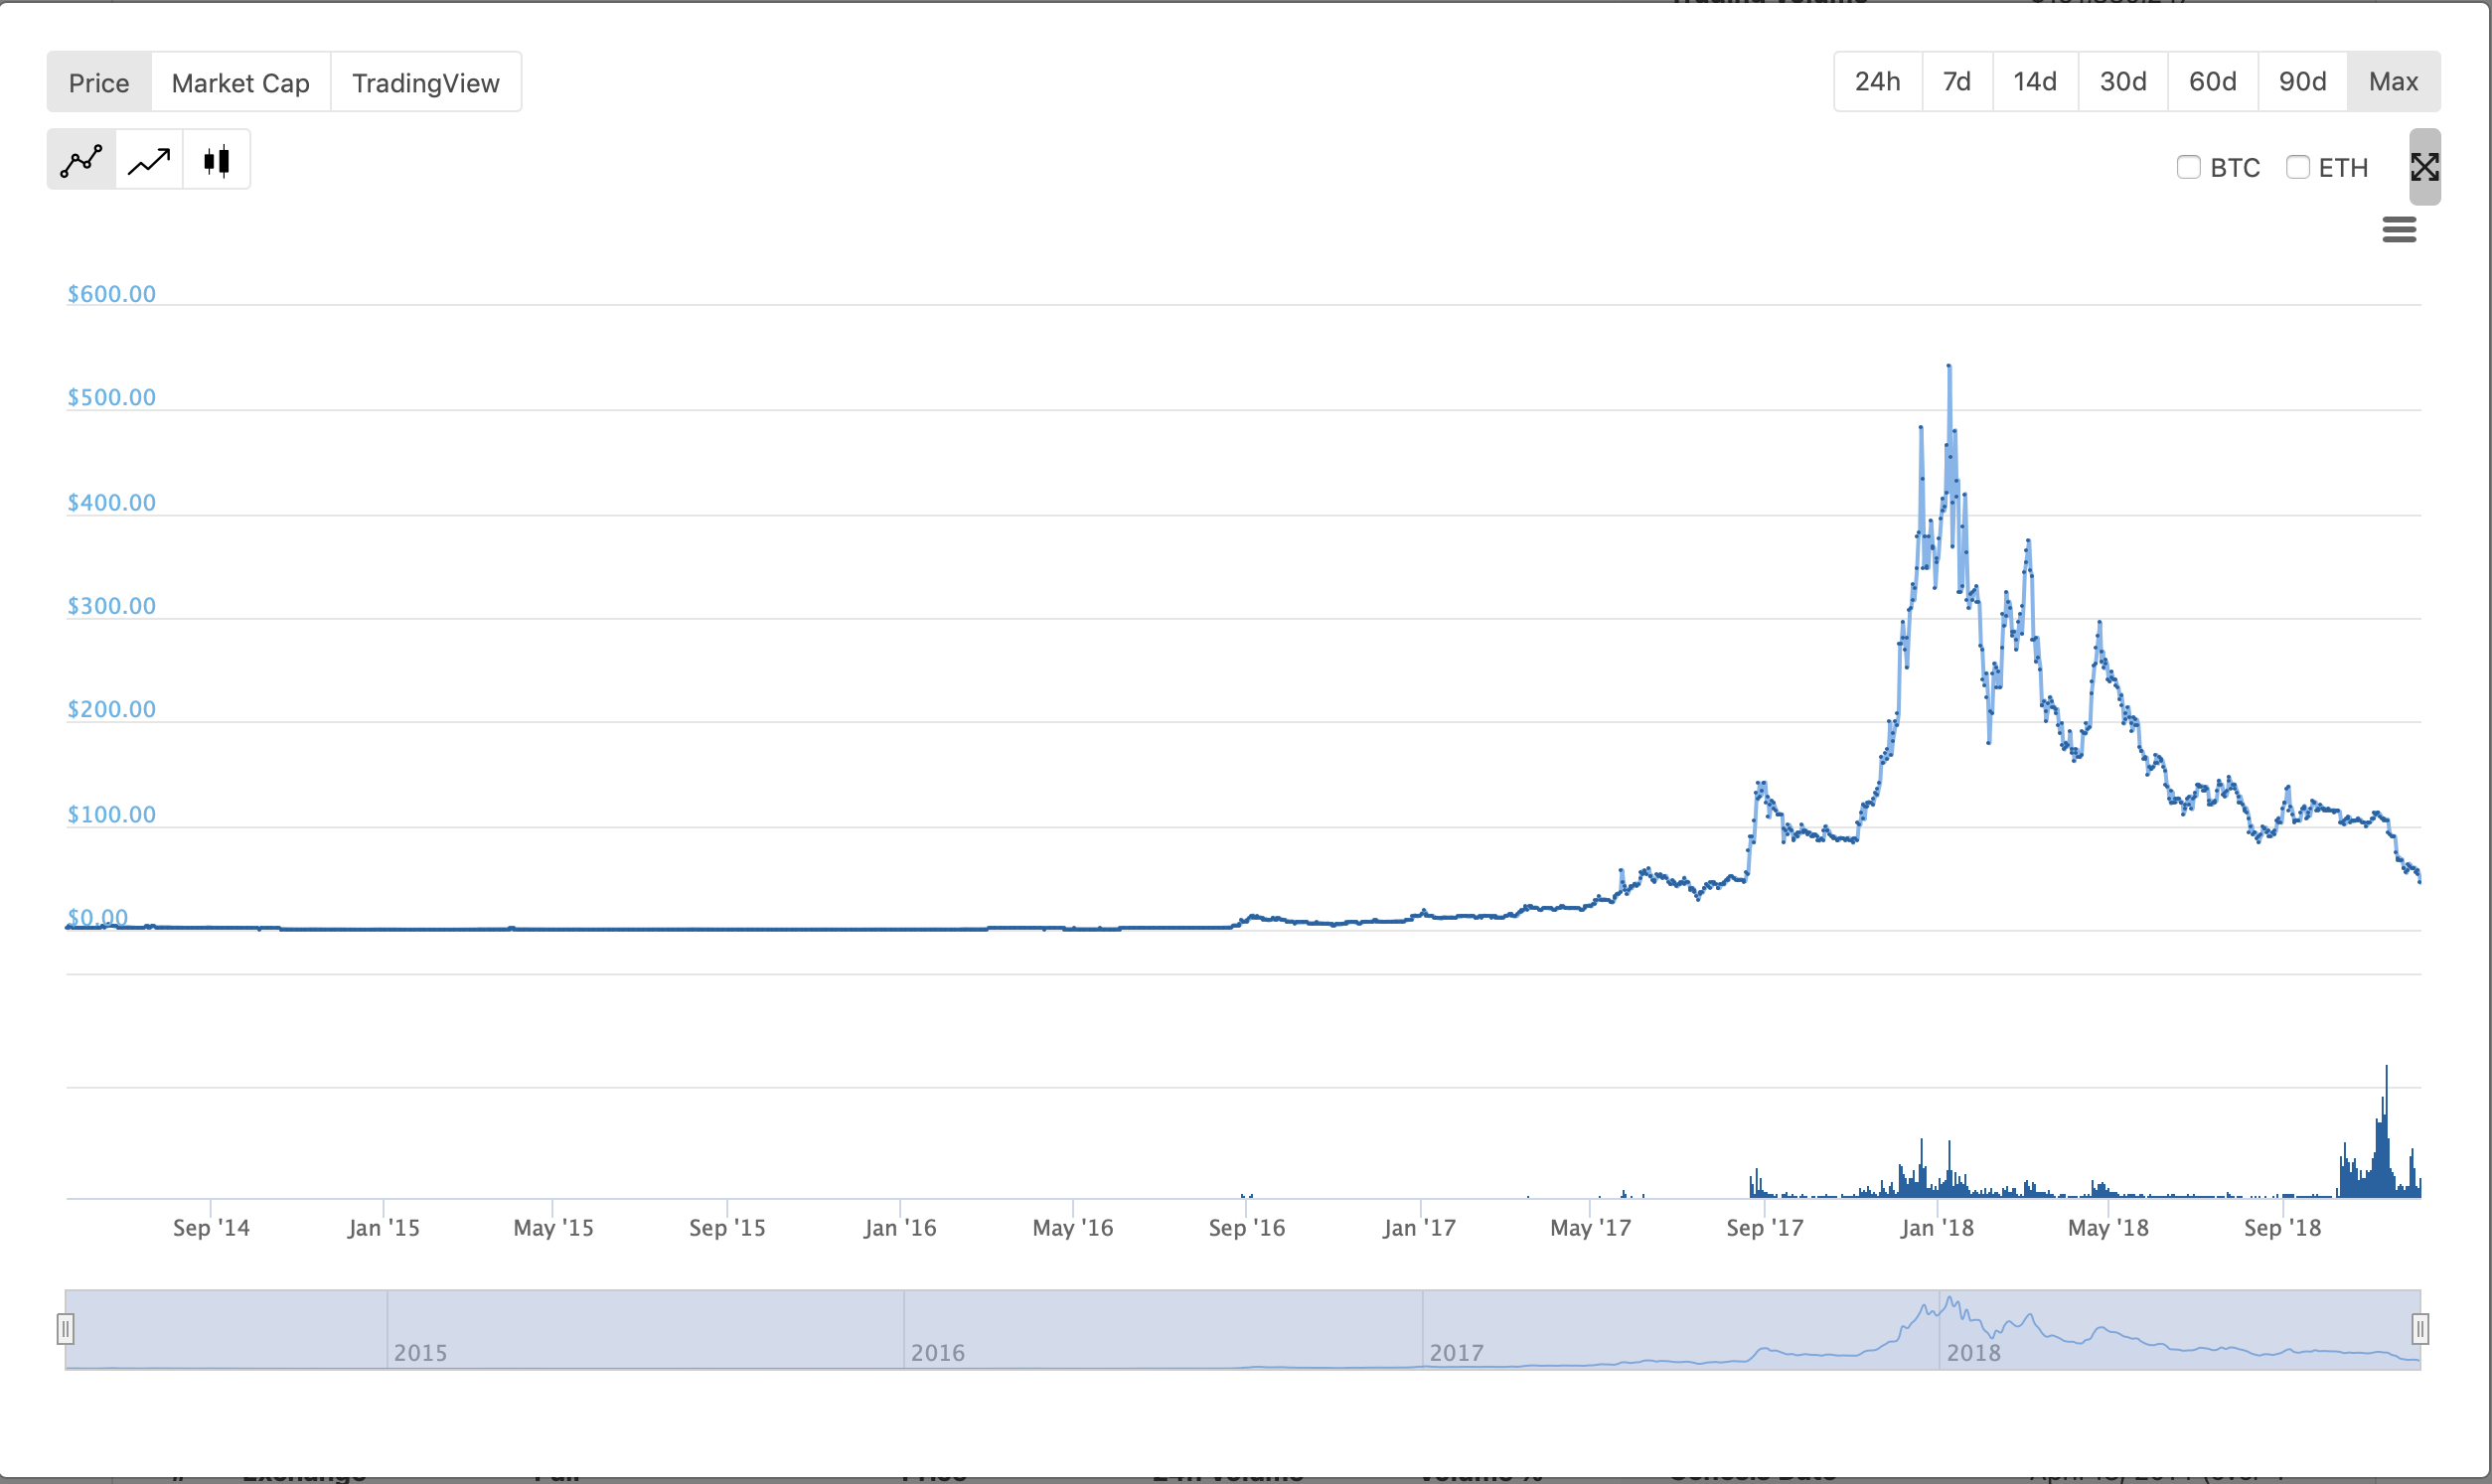 Monero Price Chart Large.png